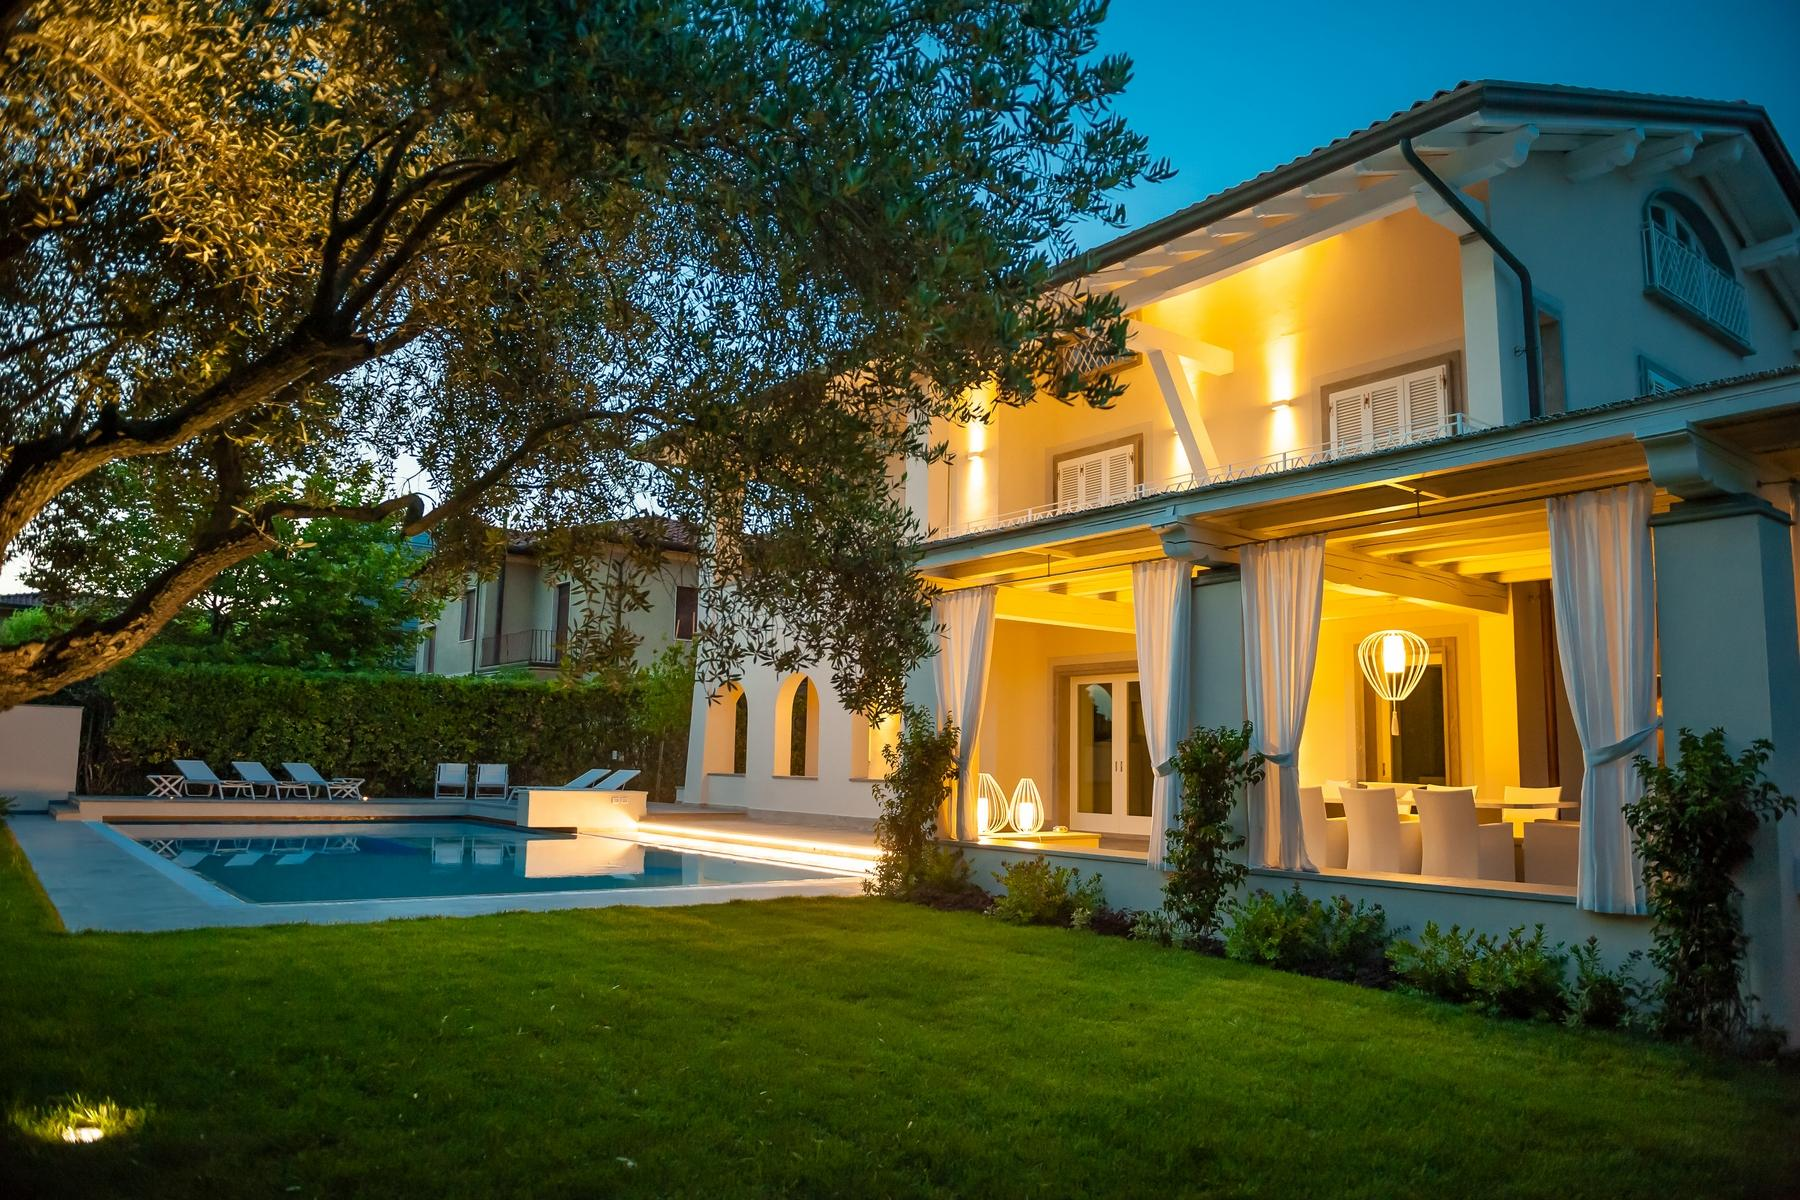 Splendid villa with swimming pool in Forte dei Marmi - 21